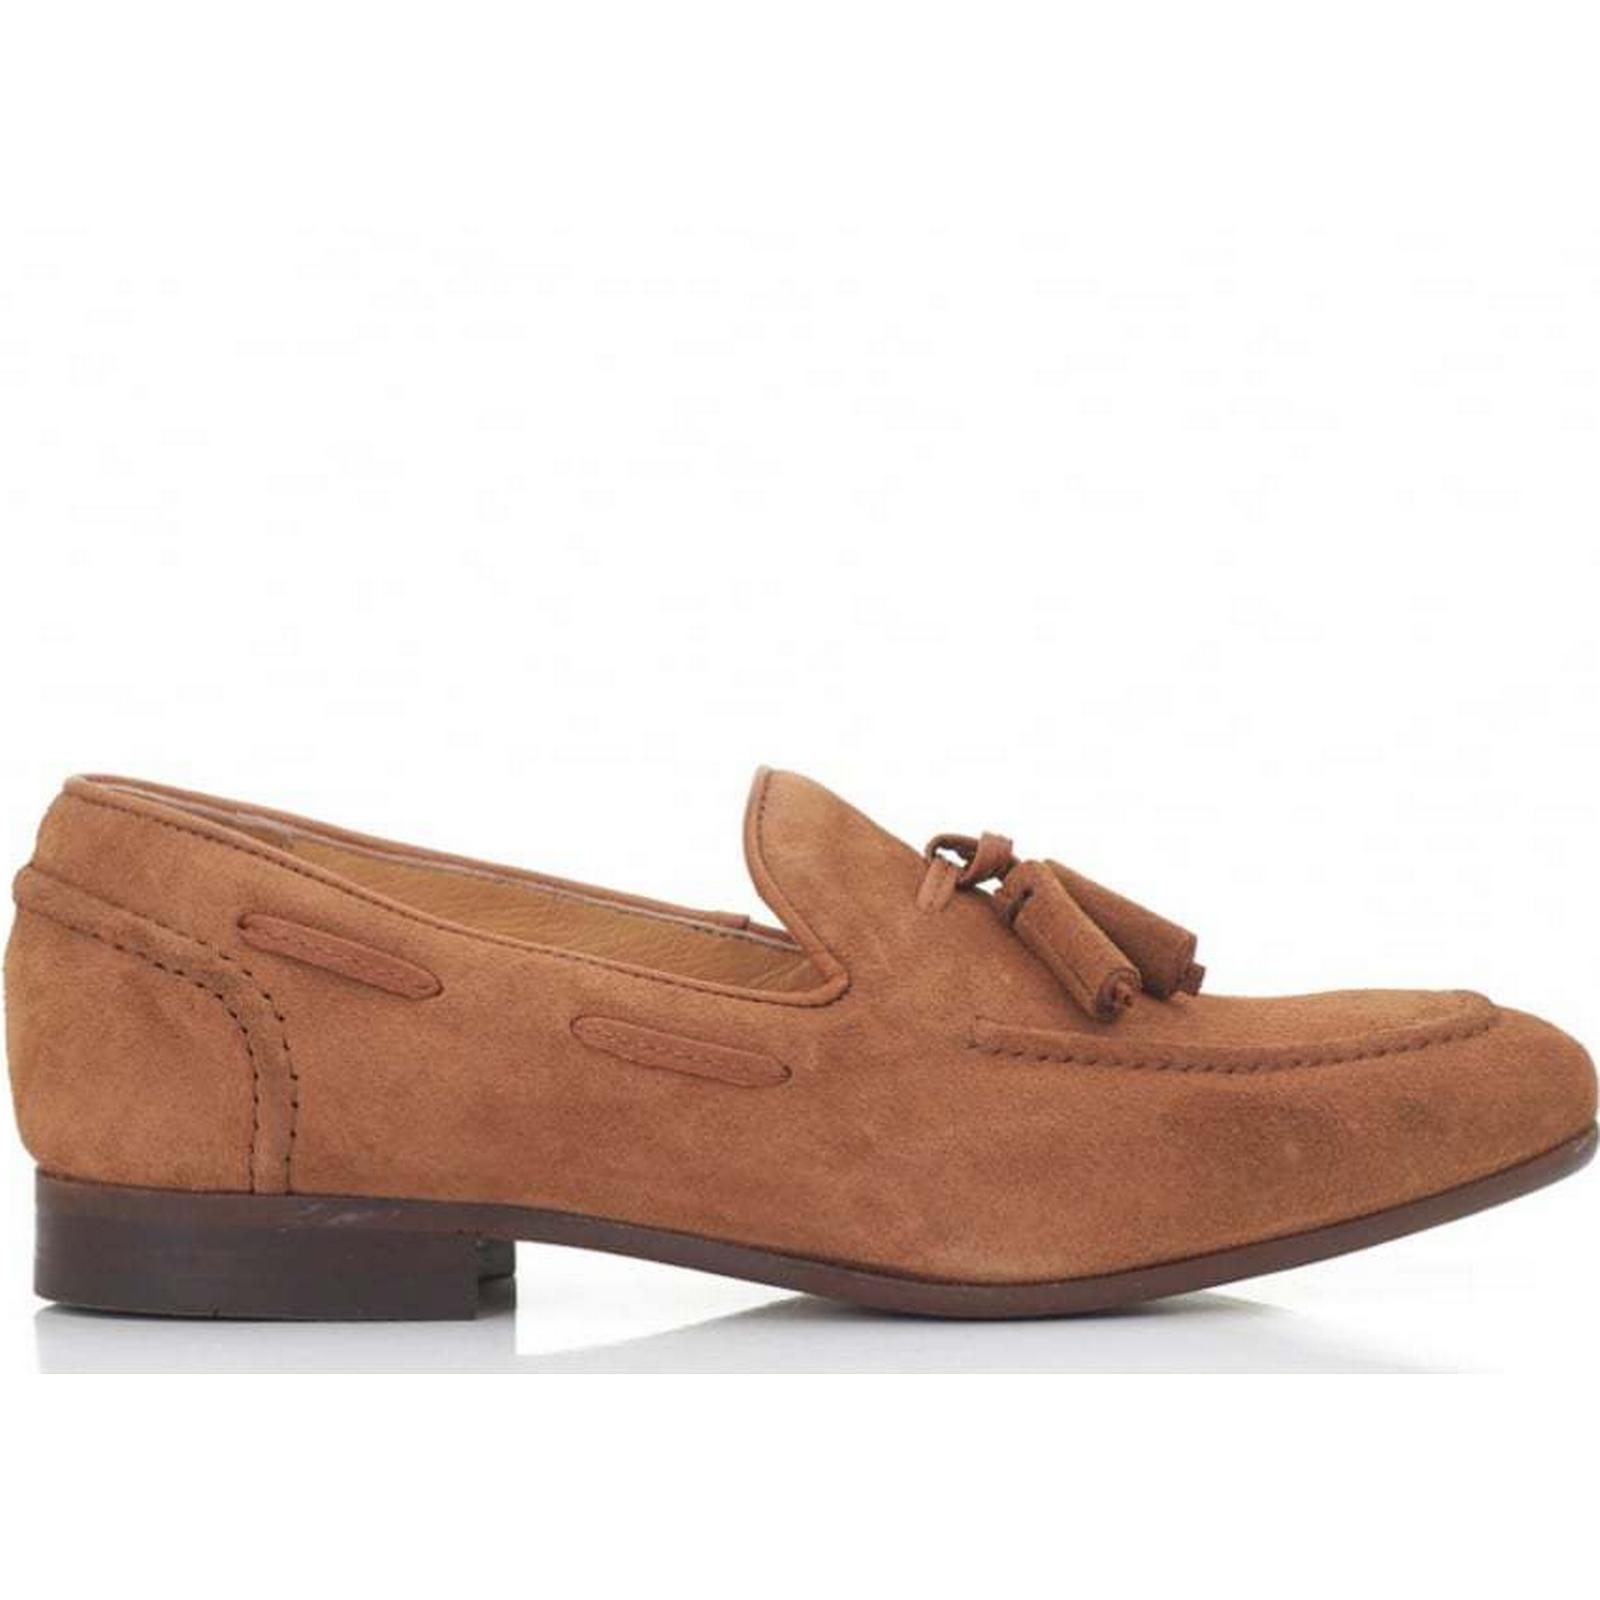 H By Hudson TAN, Pierre Suede Loafers Colour: TAN, Hudson Size: 6 053527